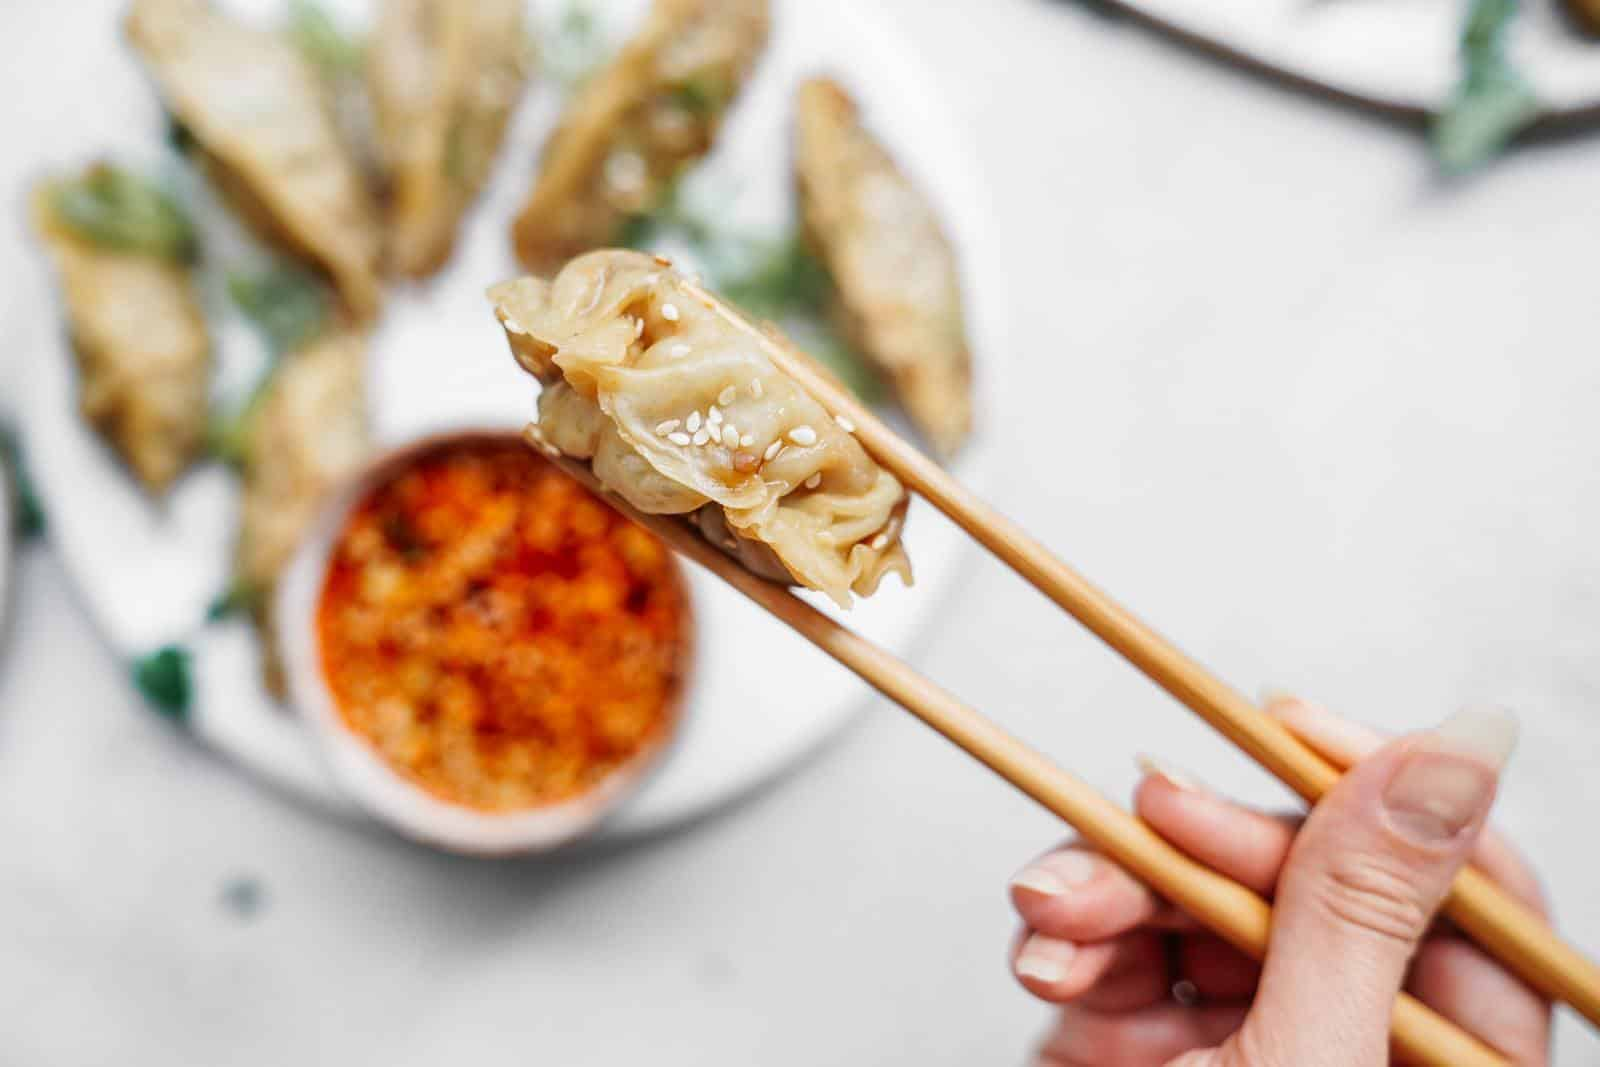 Vegan dumplings on a plate in the background on a table, with a close-up of a vegan dumpling in between chopsticks.